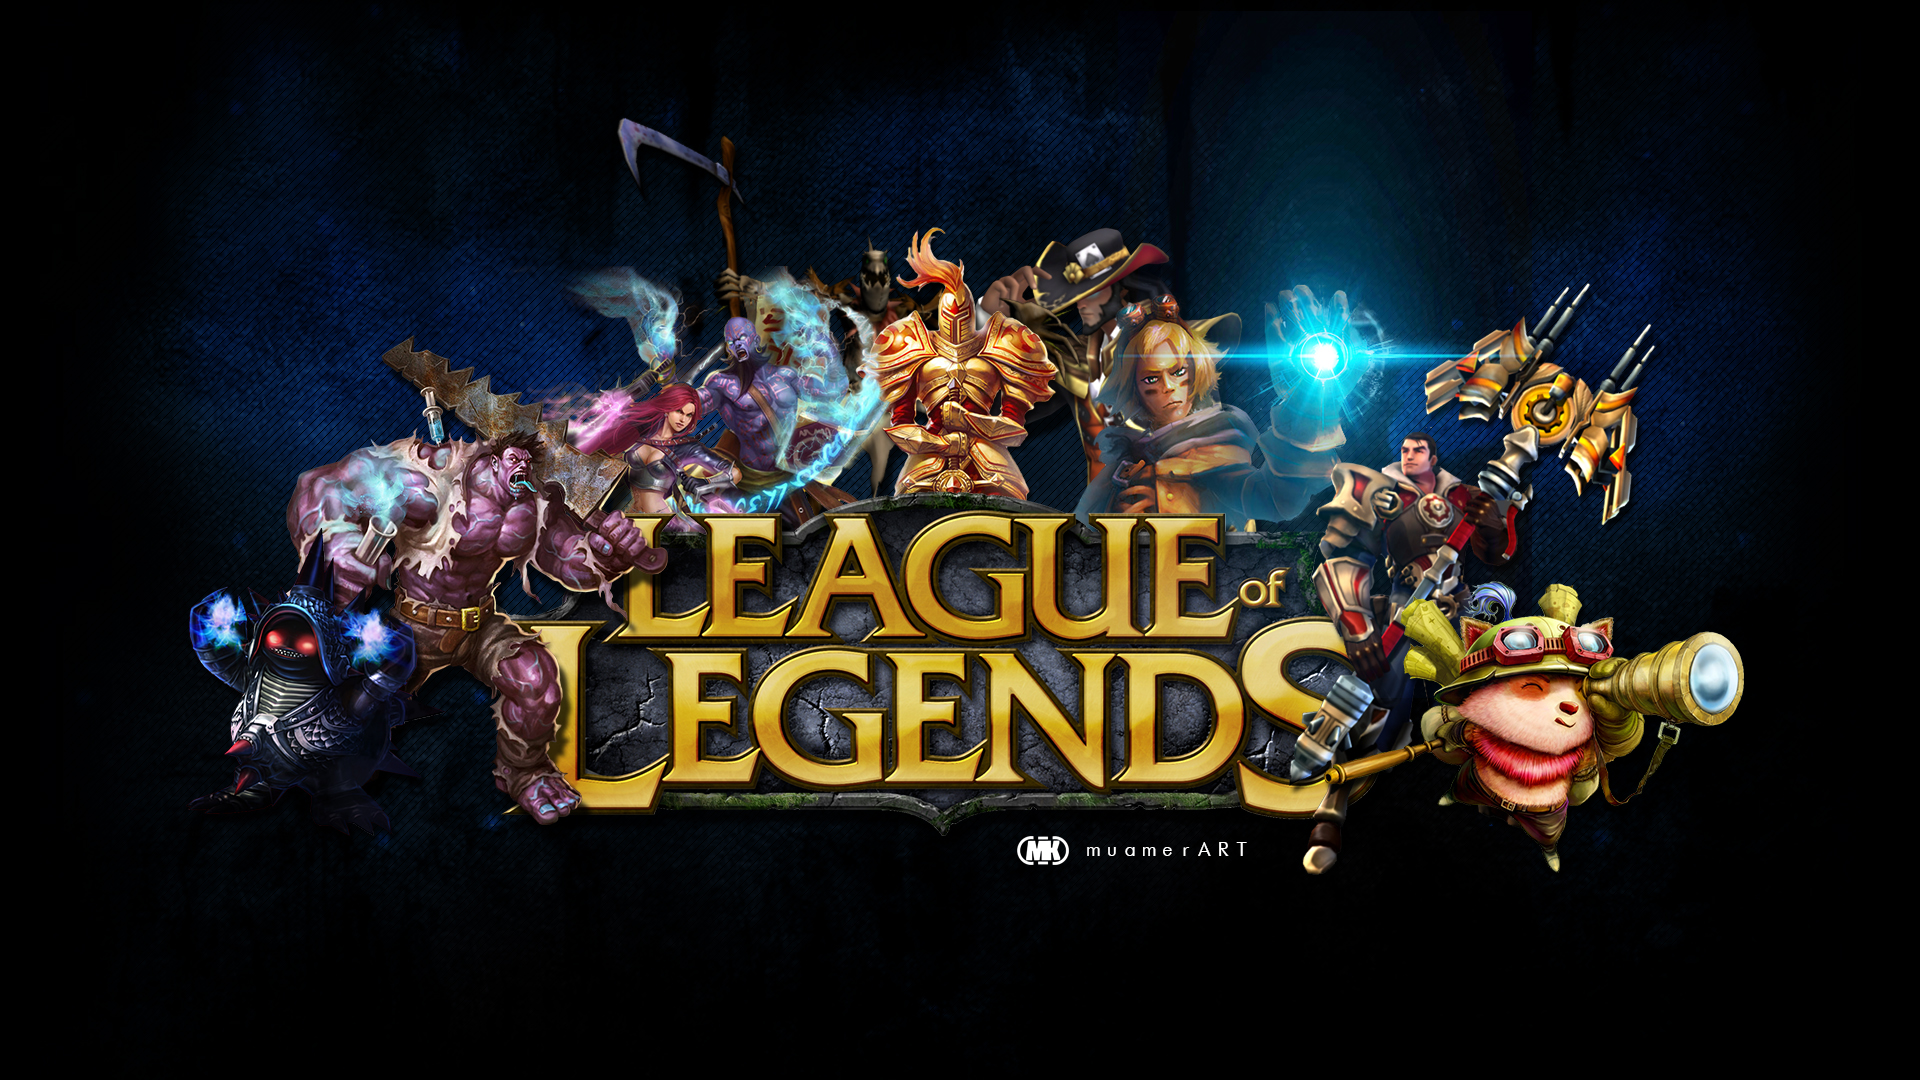 Legends Wallpapers Hd wallpaper